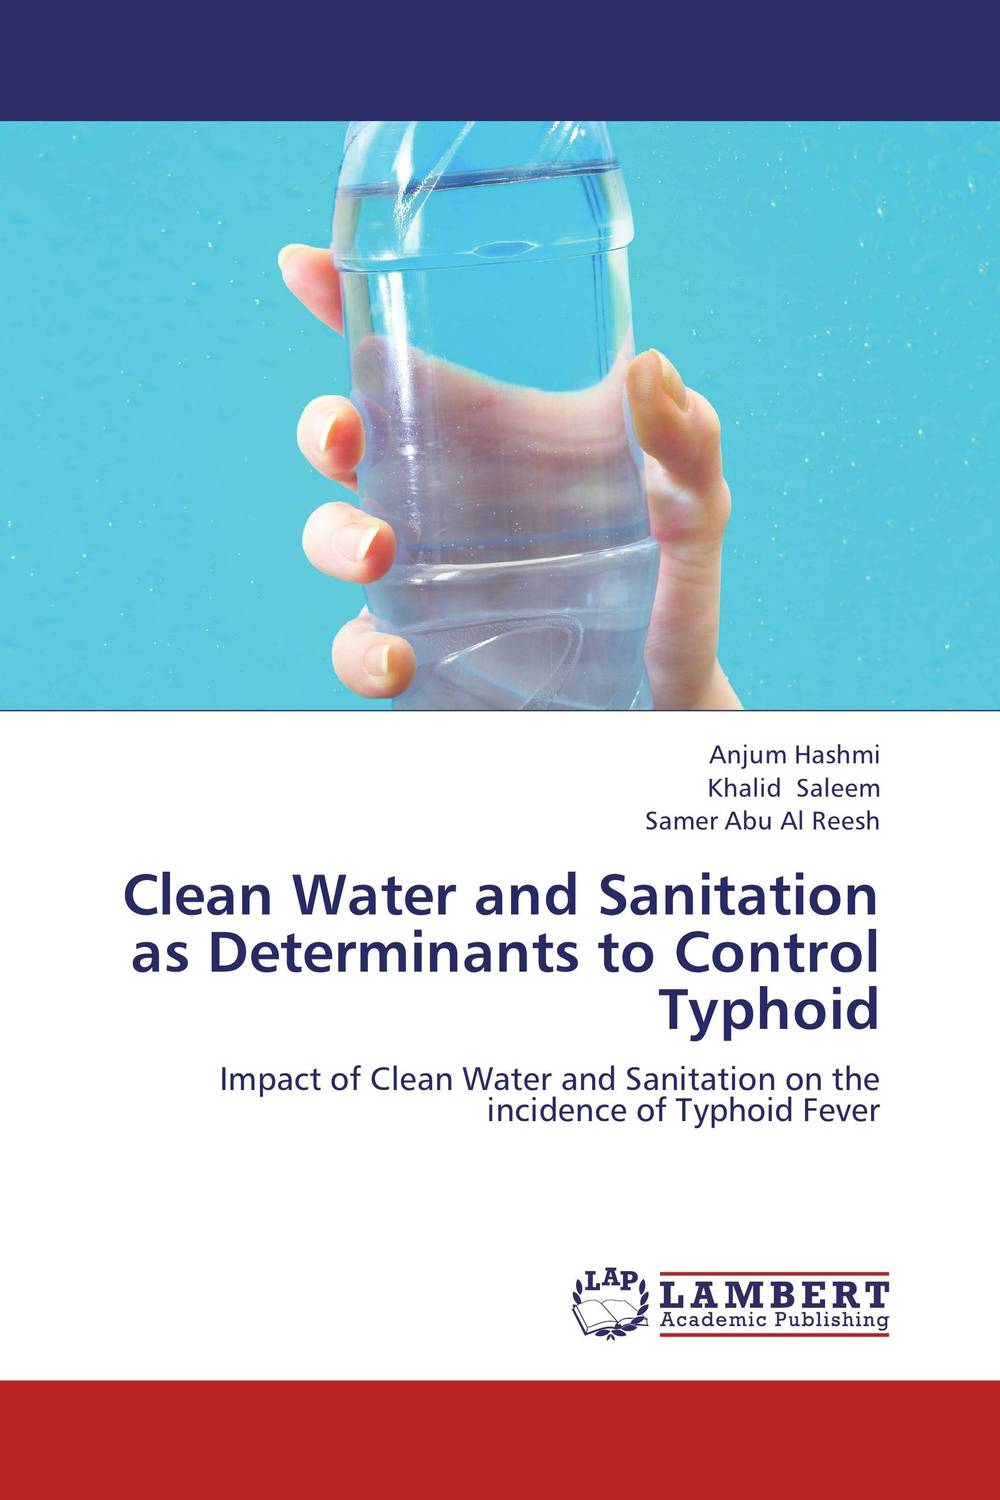 Clean Water and Sanitation as Determinants to Control Typhoid